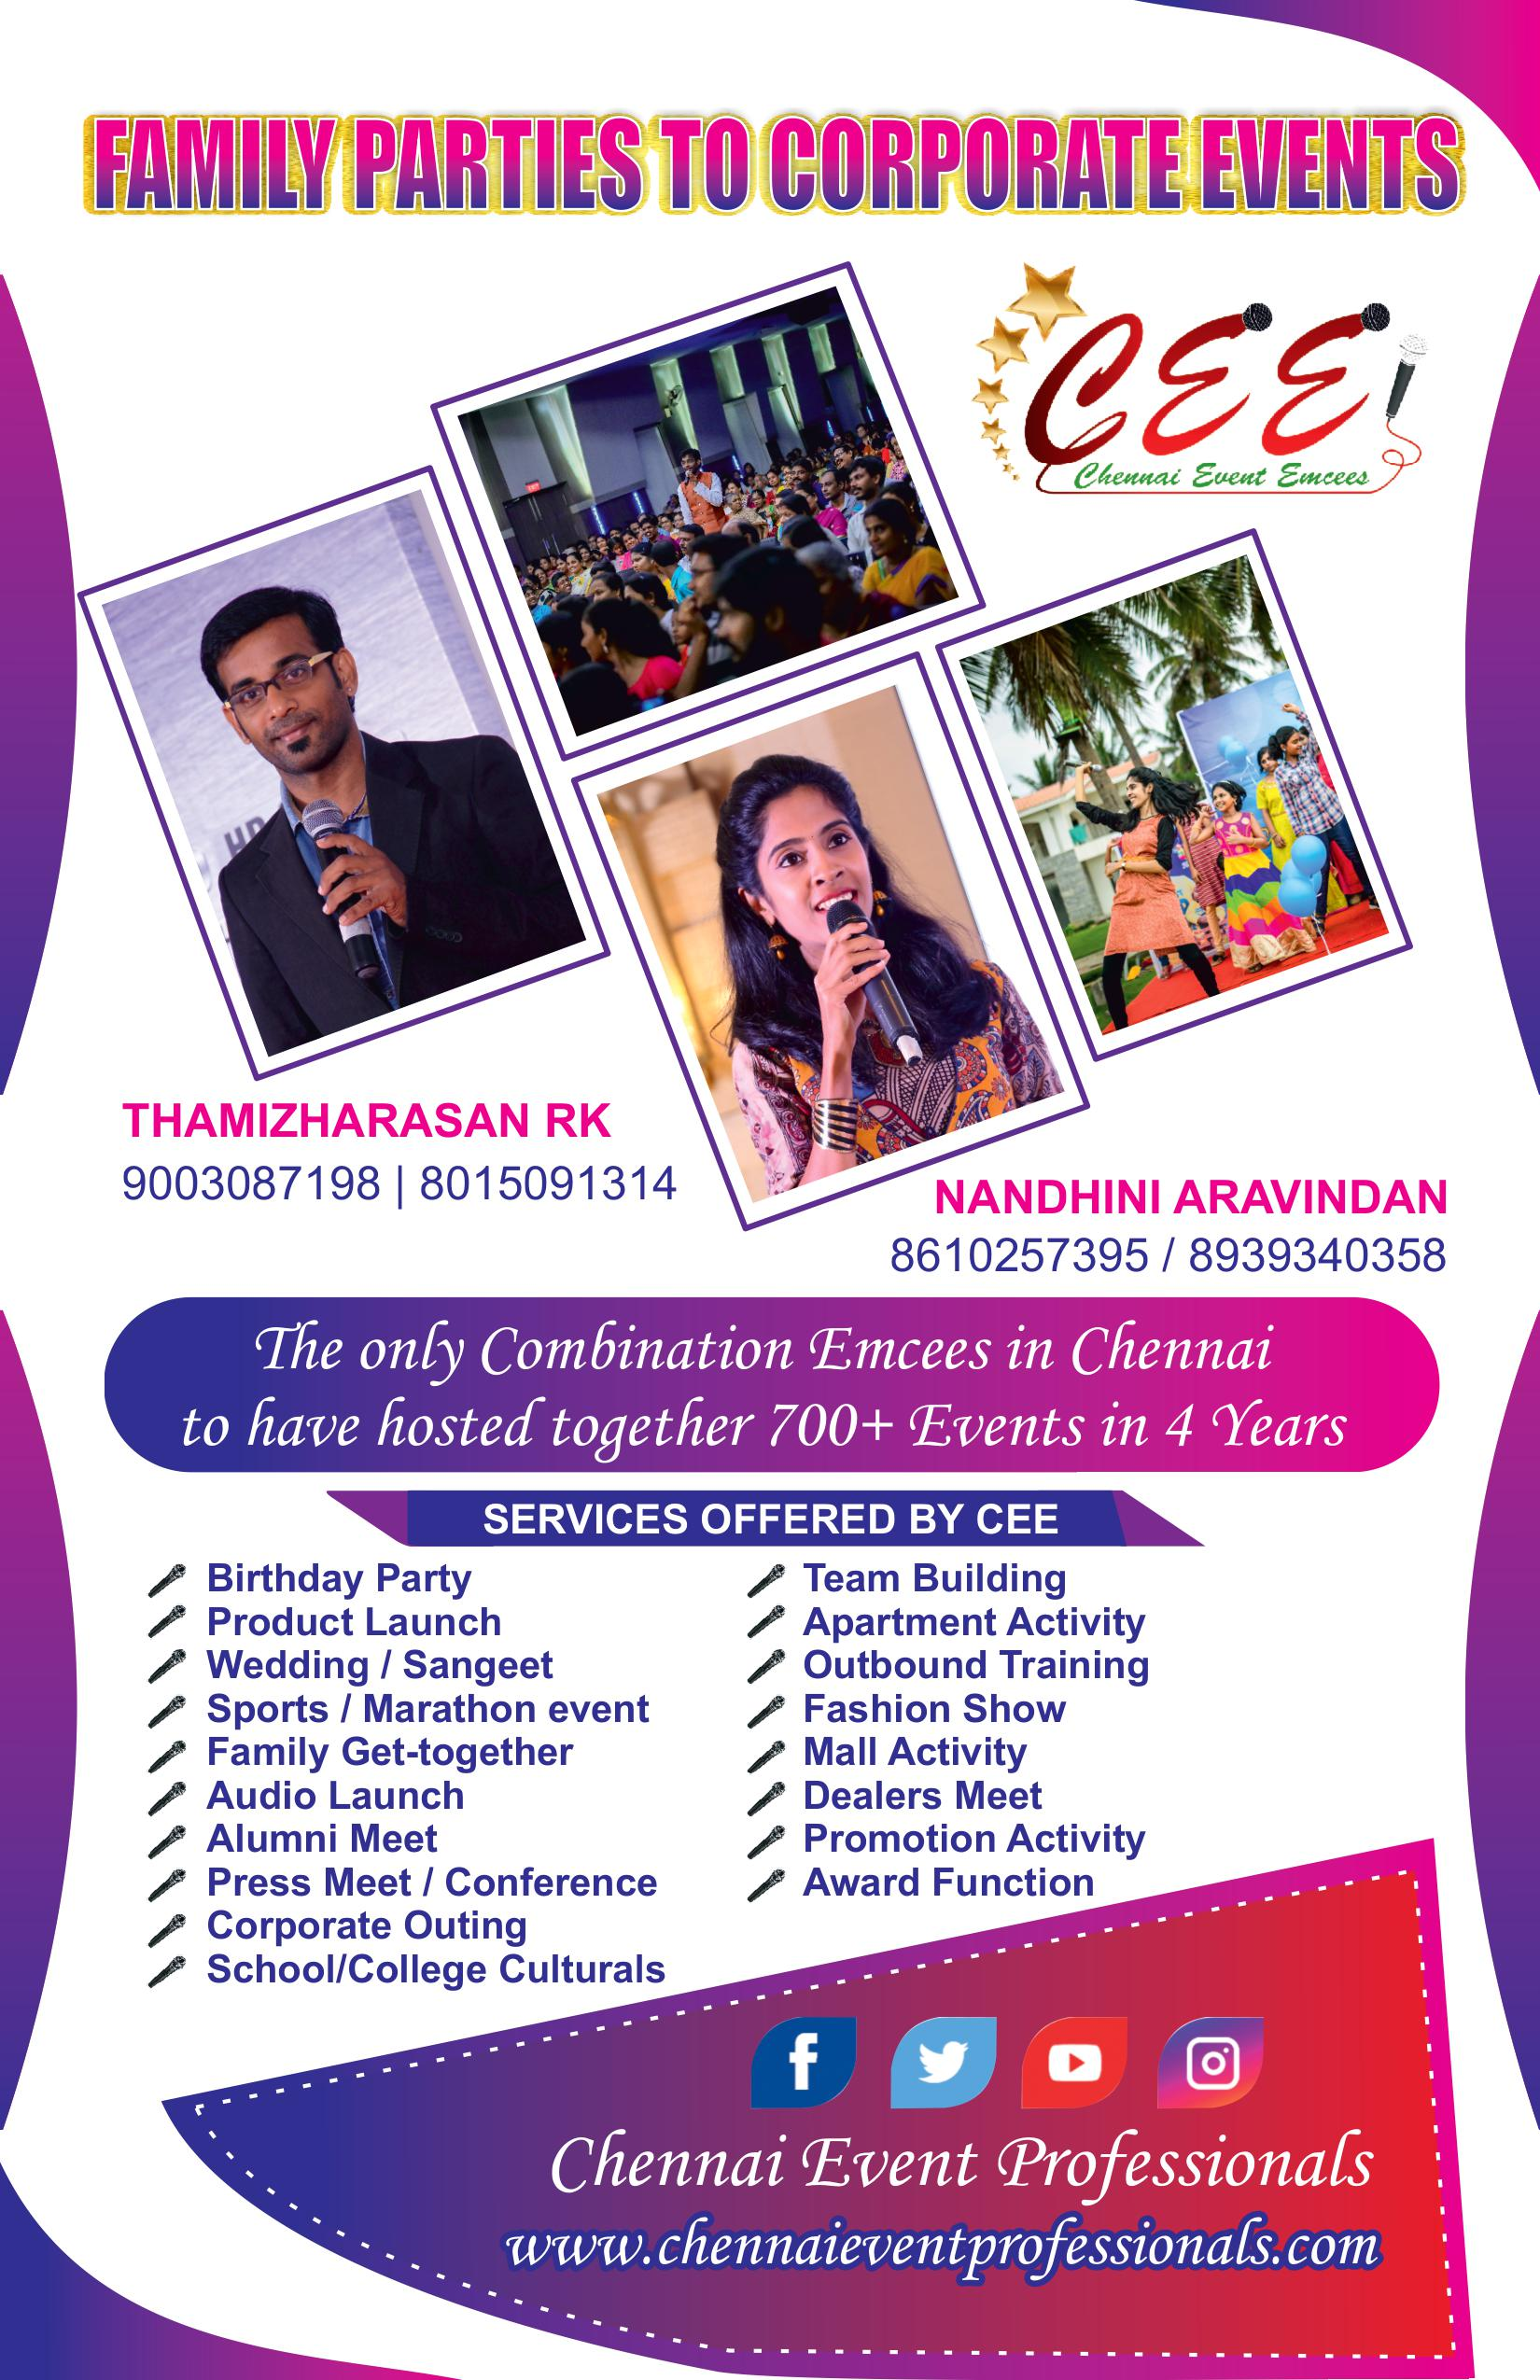 Chennai Event Emcees Entertainers and Professionals Digital Emcees Thamizharasan and Nandhini Aravindan